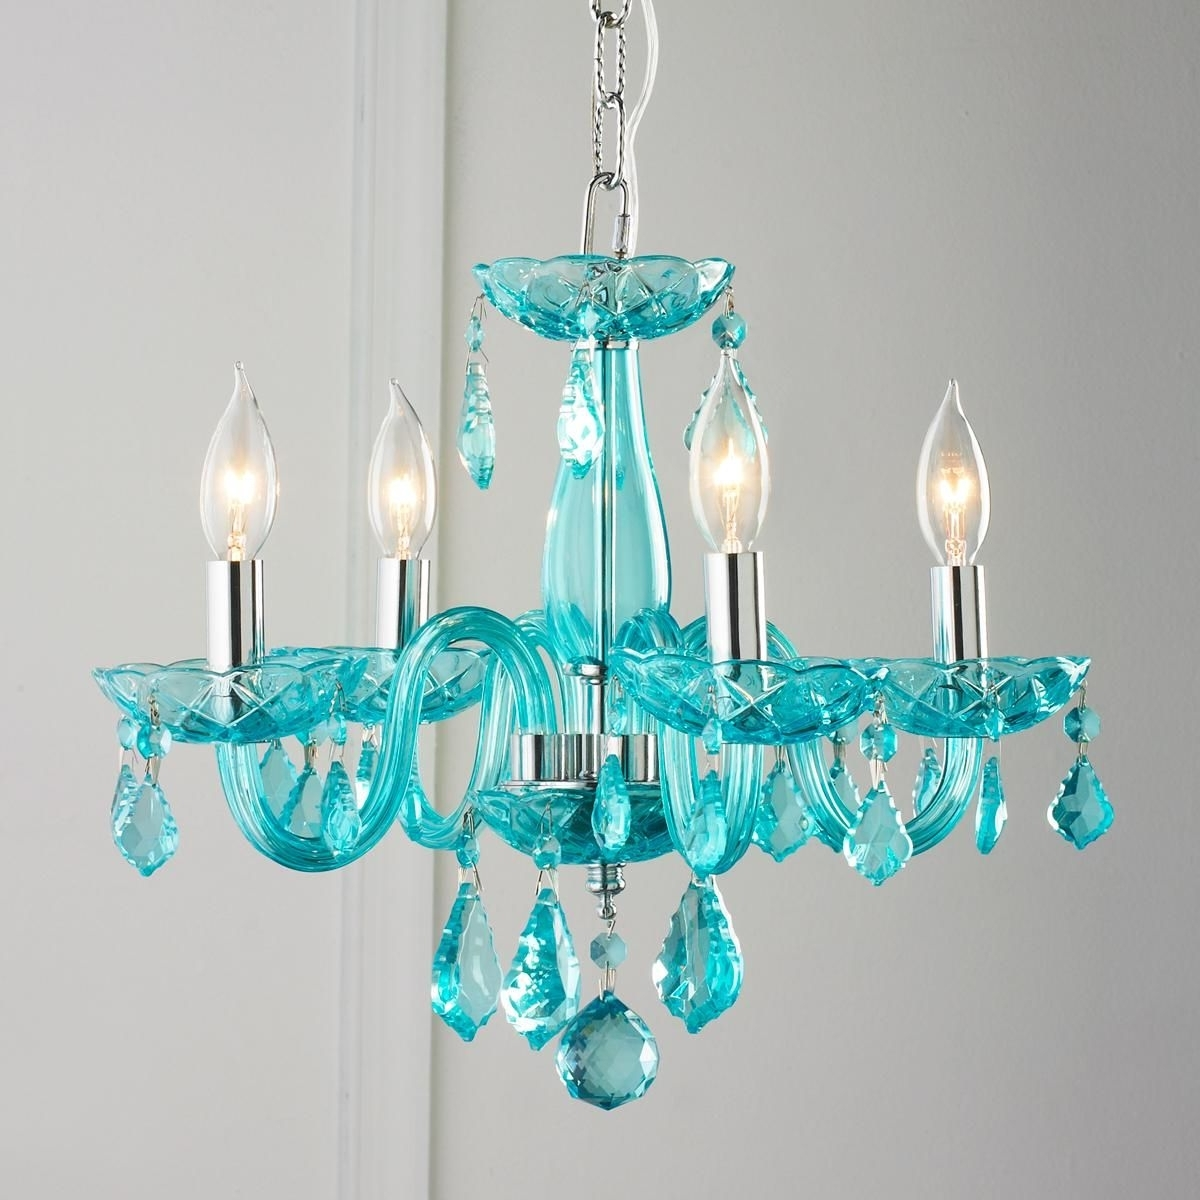 Best And Newest Turquoise Gem Chandelier Lamps Regarding Color Crystal Mini Chandelier (View 11 of 15)